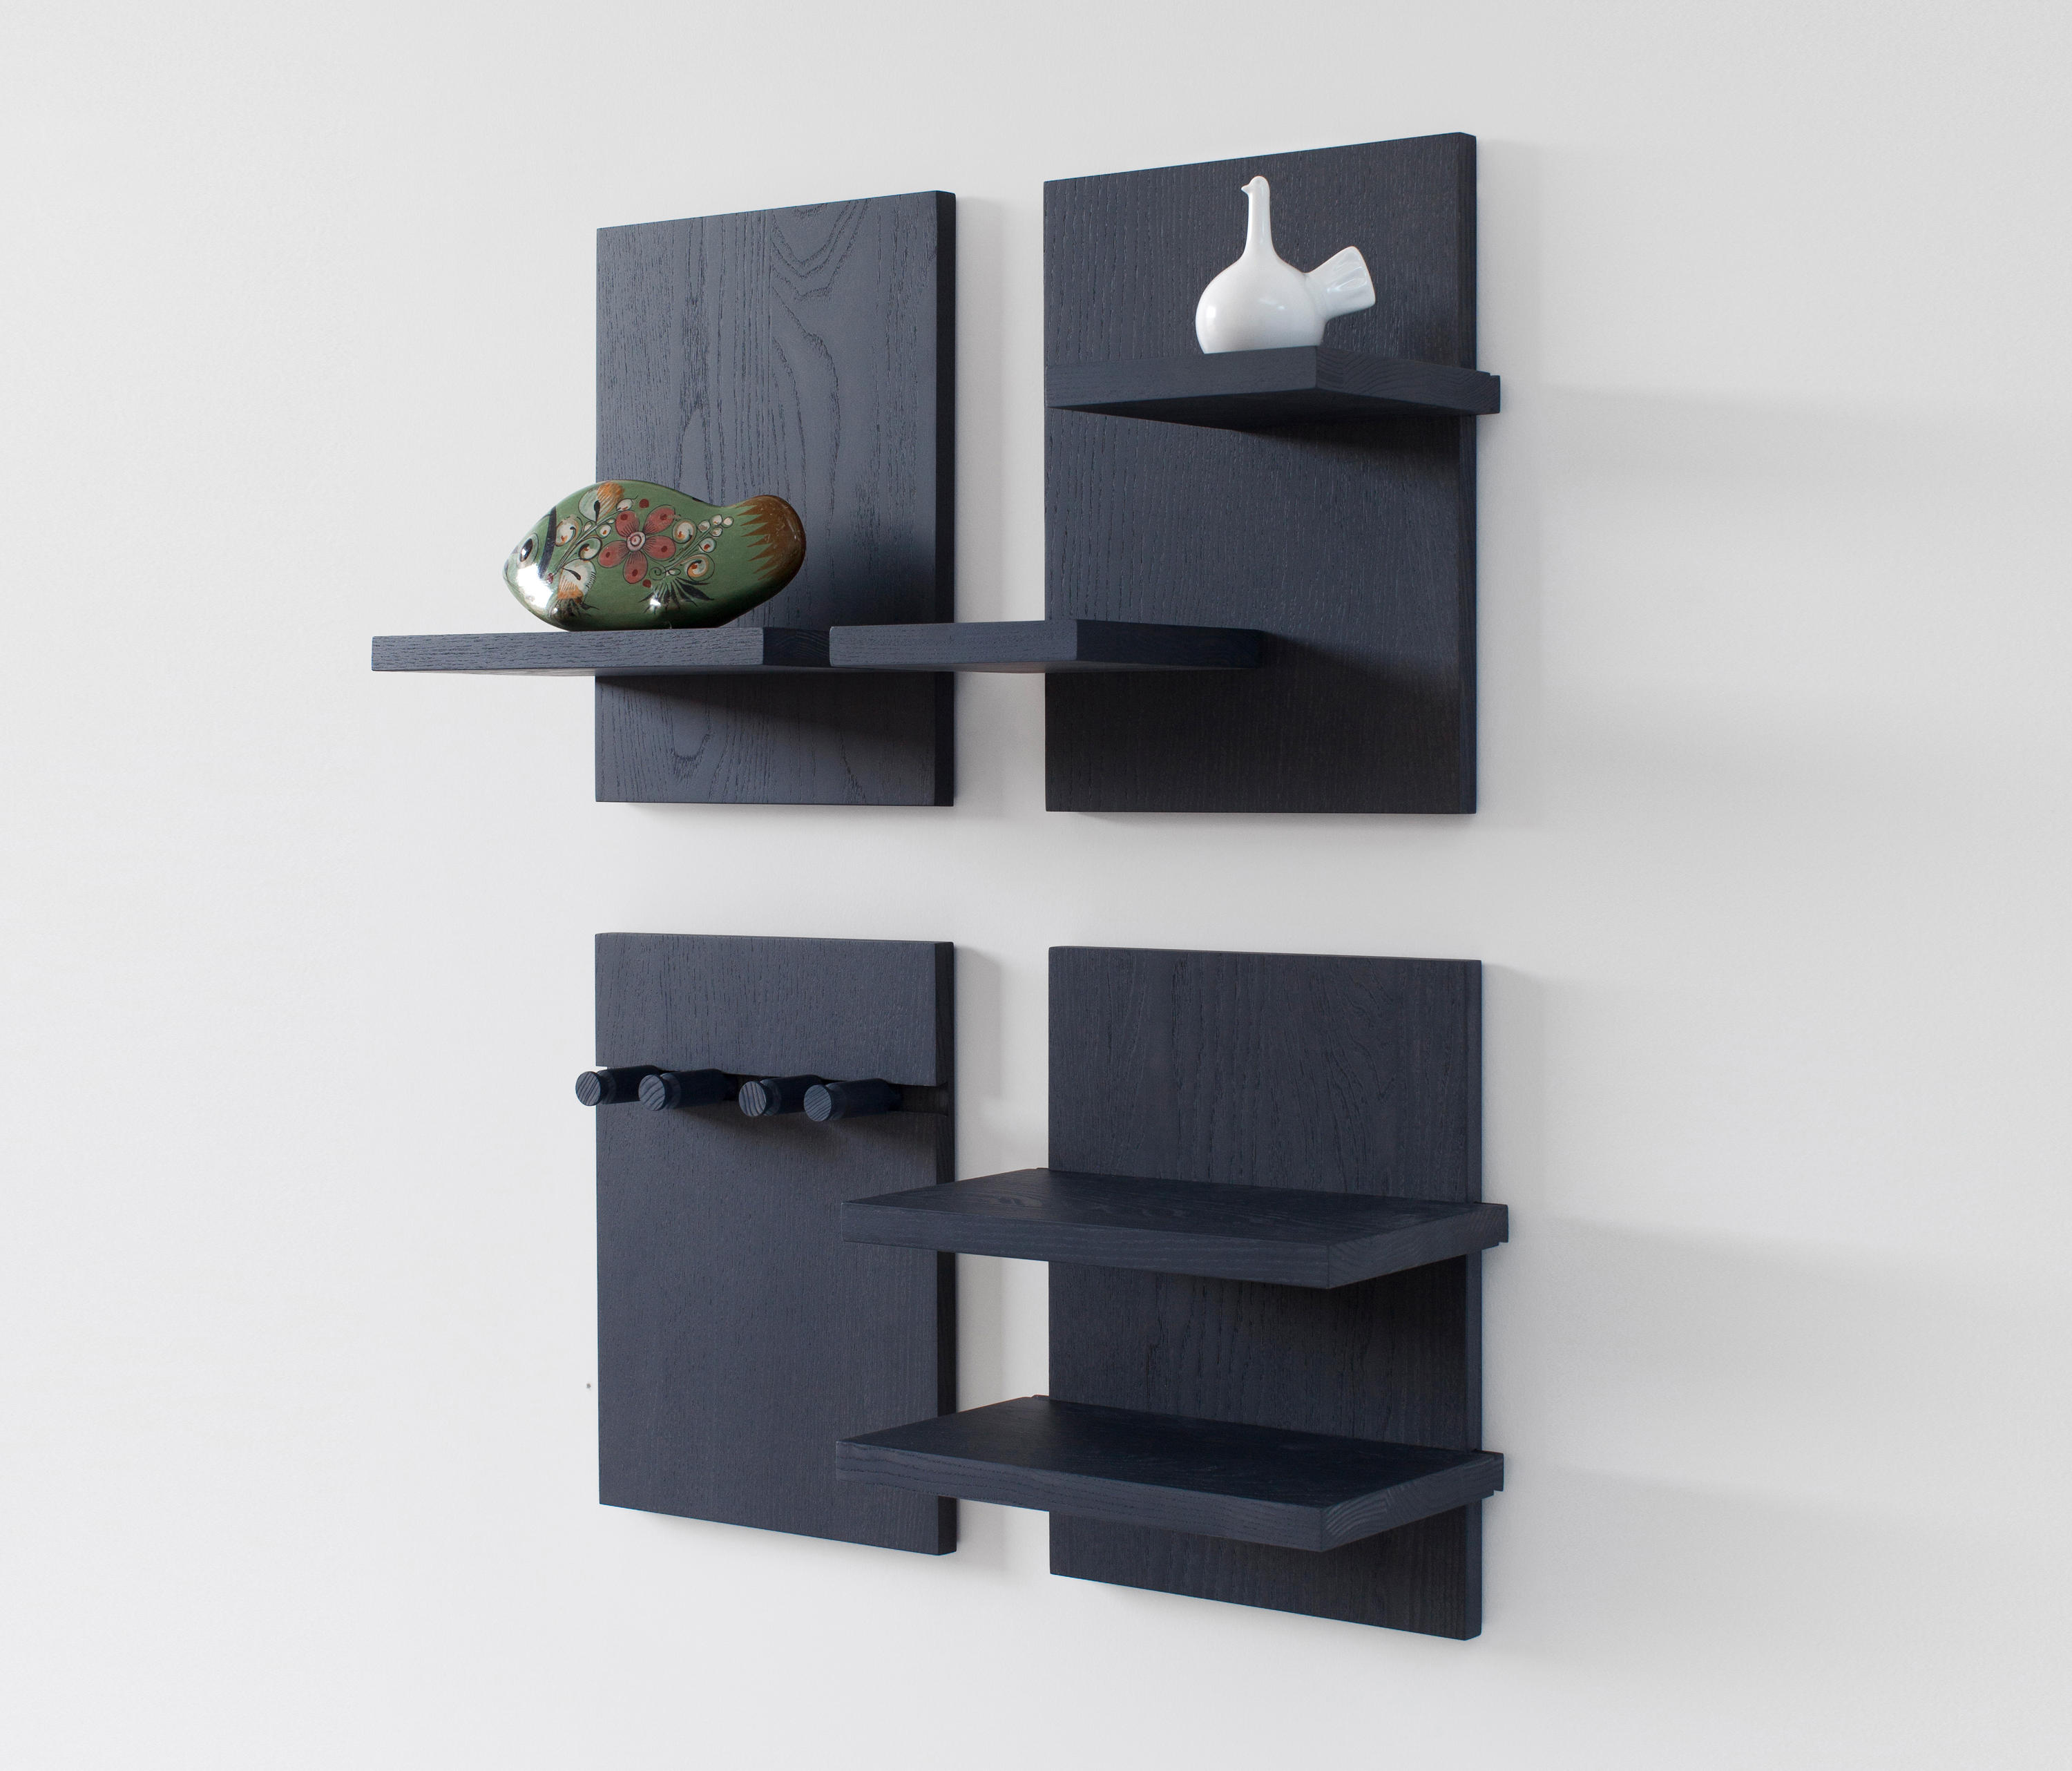 wall shelf single tag res tablettes de stattmann neue moebel architonic. Black Bedroom Furniture Sets. Home Design Ideas